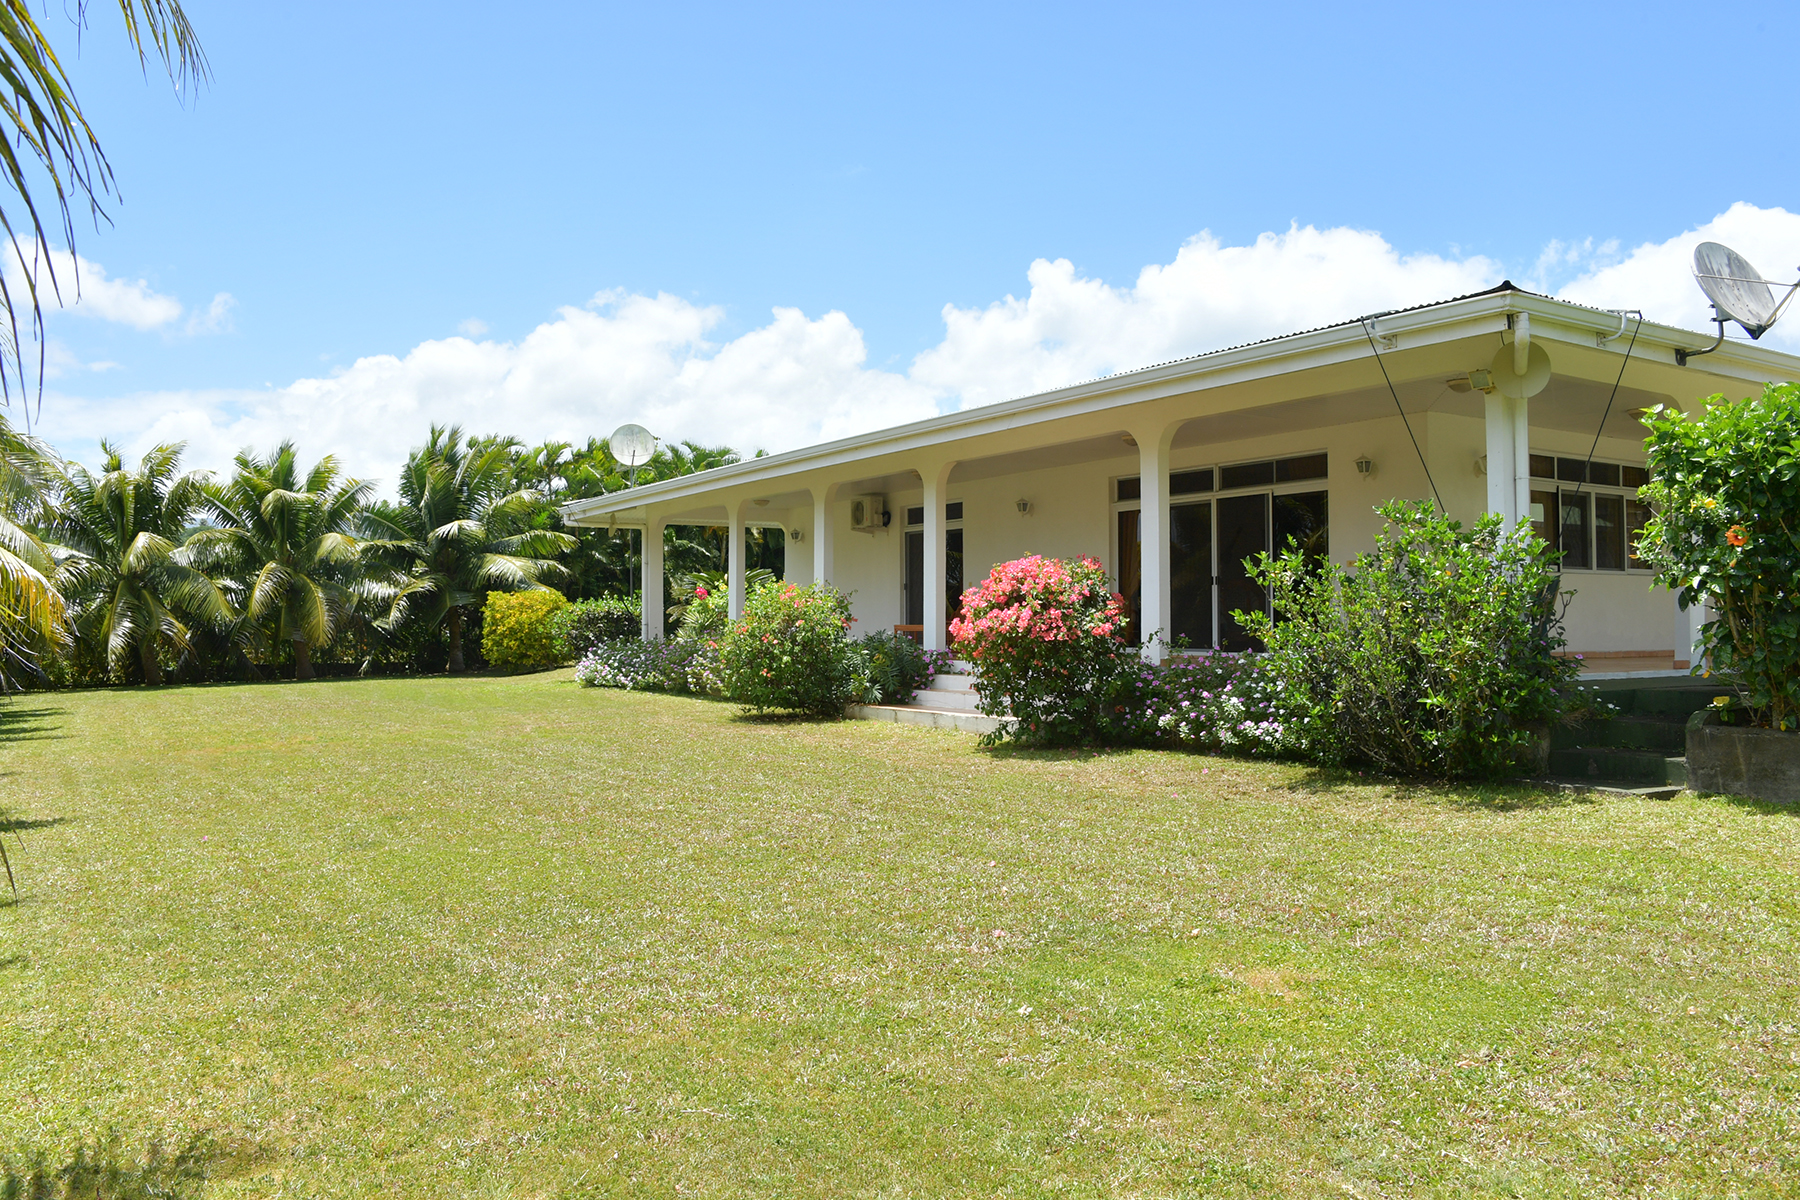 Single Family Home for Sale at Family home in a quiet area Tahiti, French Polynesia